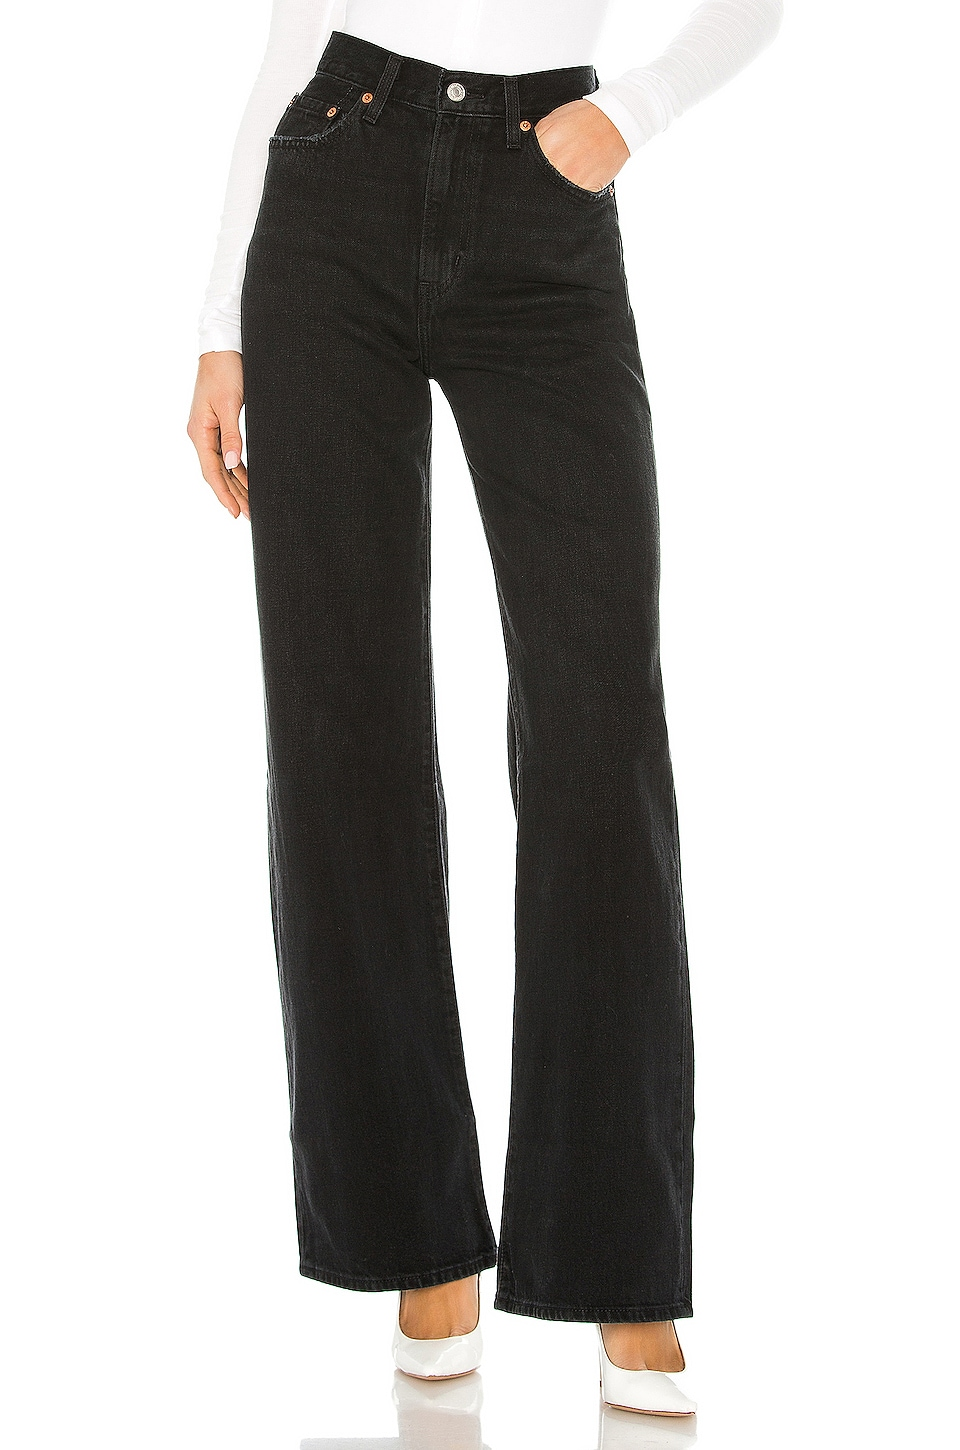 LEVI'S Ribcage Wide Leg in Black Book RC